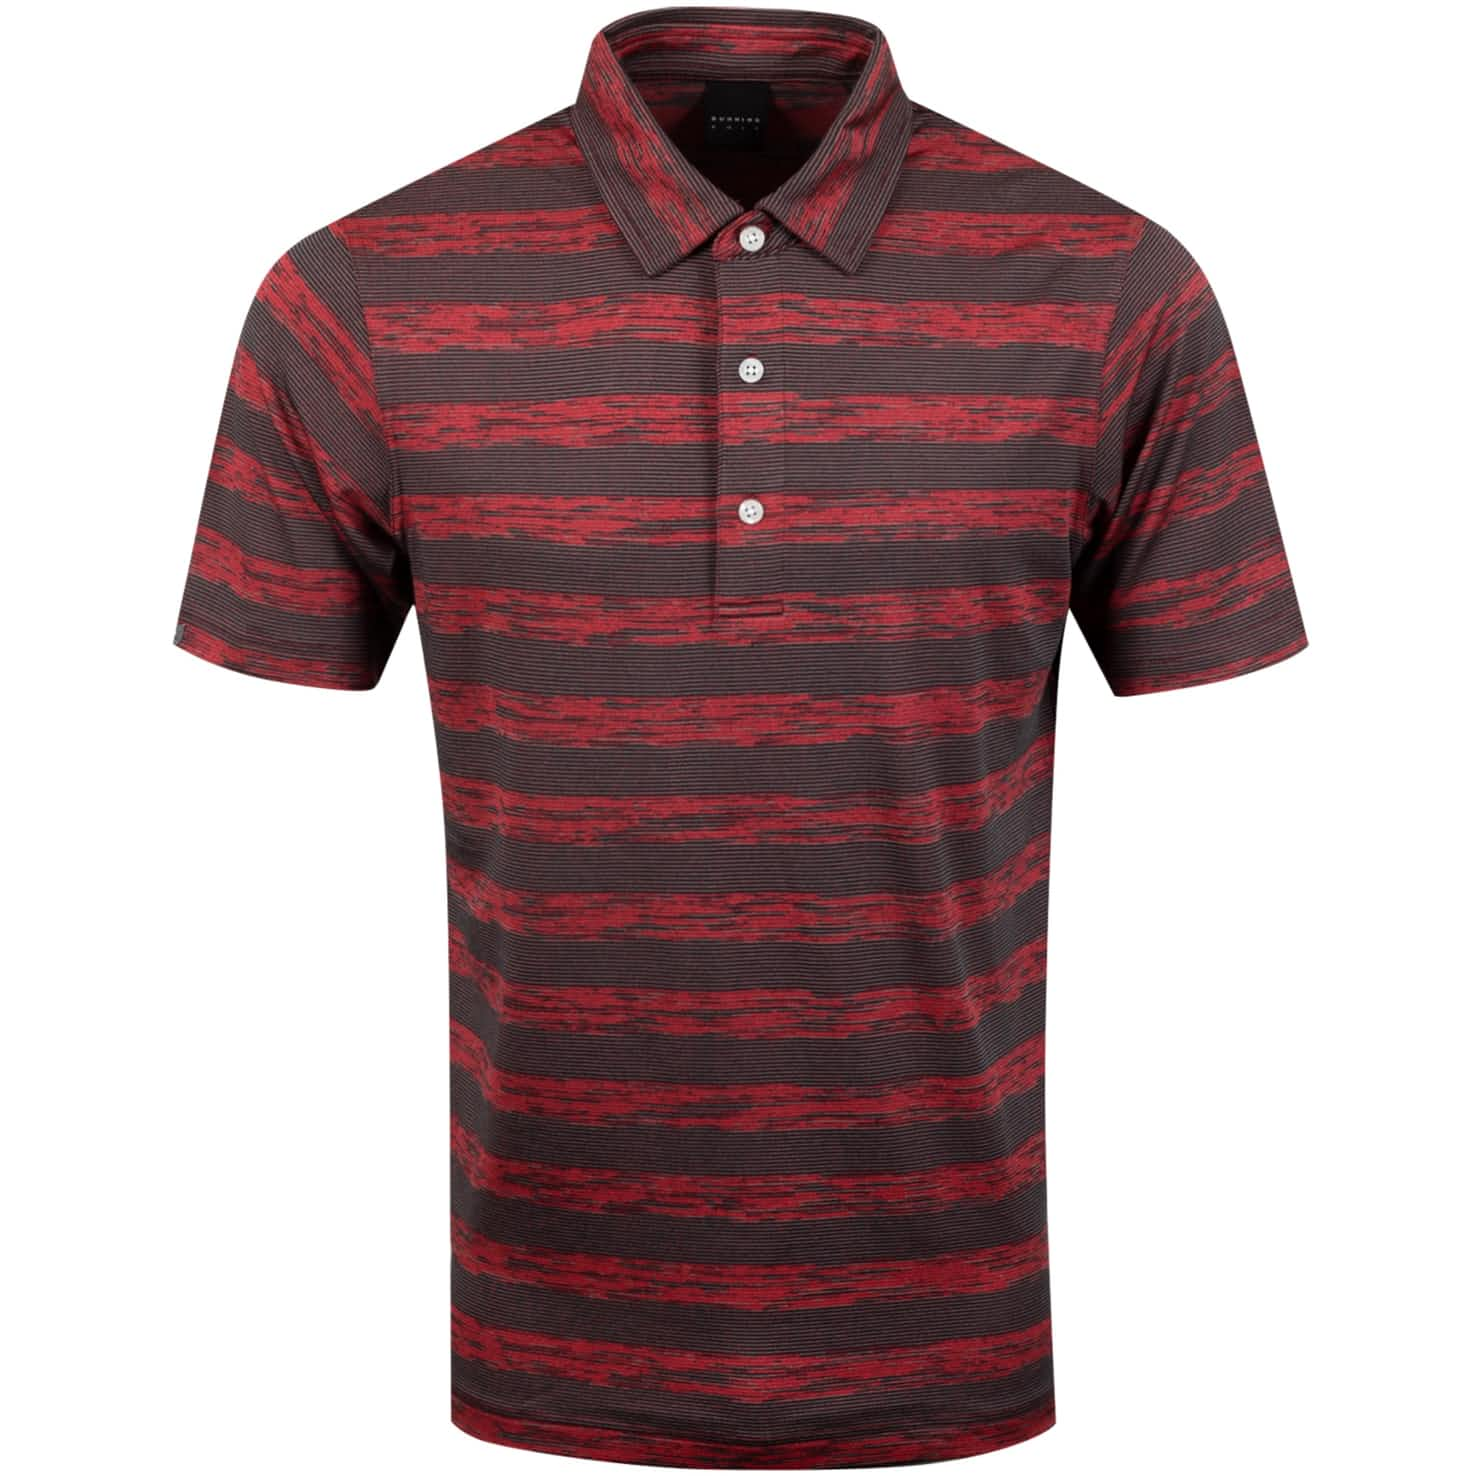 Pennan Golf Polo Black/Charcoal/Root Heather - SS20